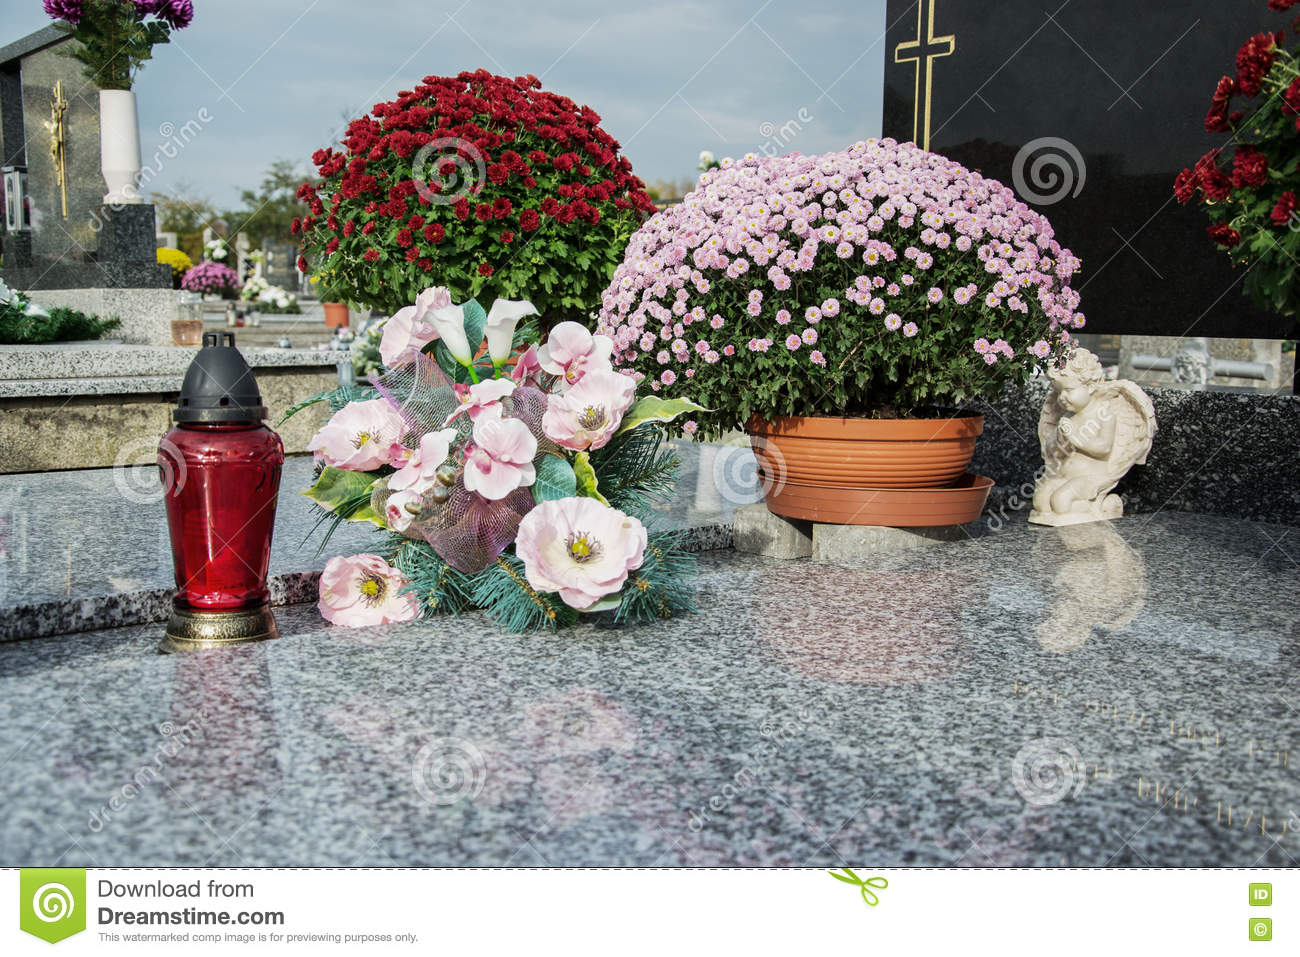 Votive candles lantern and chrysanthemum flowers on tomb stones in graveyard. Graves, tombstones on traditional cemetery